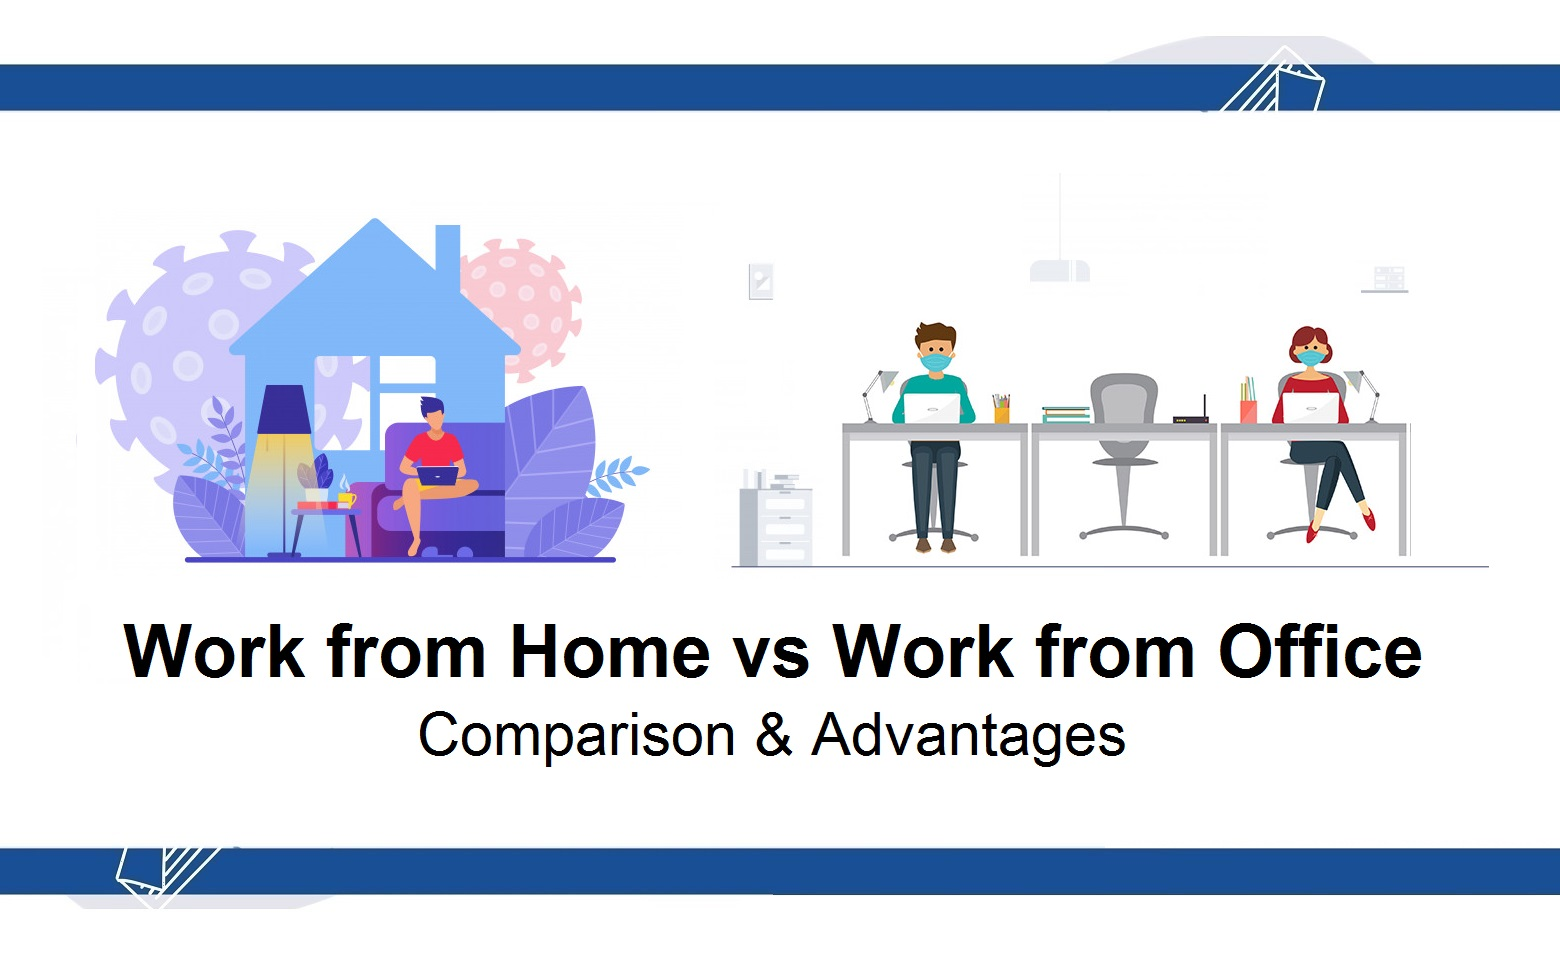 Work from Home vs Work from Office